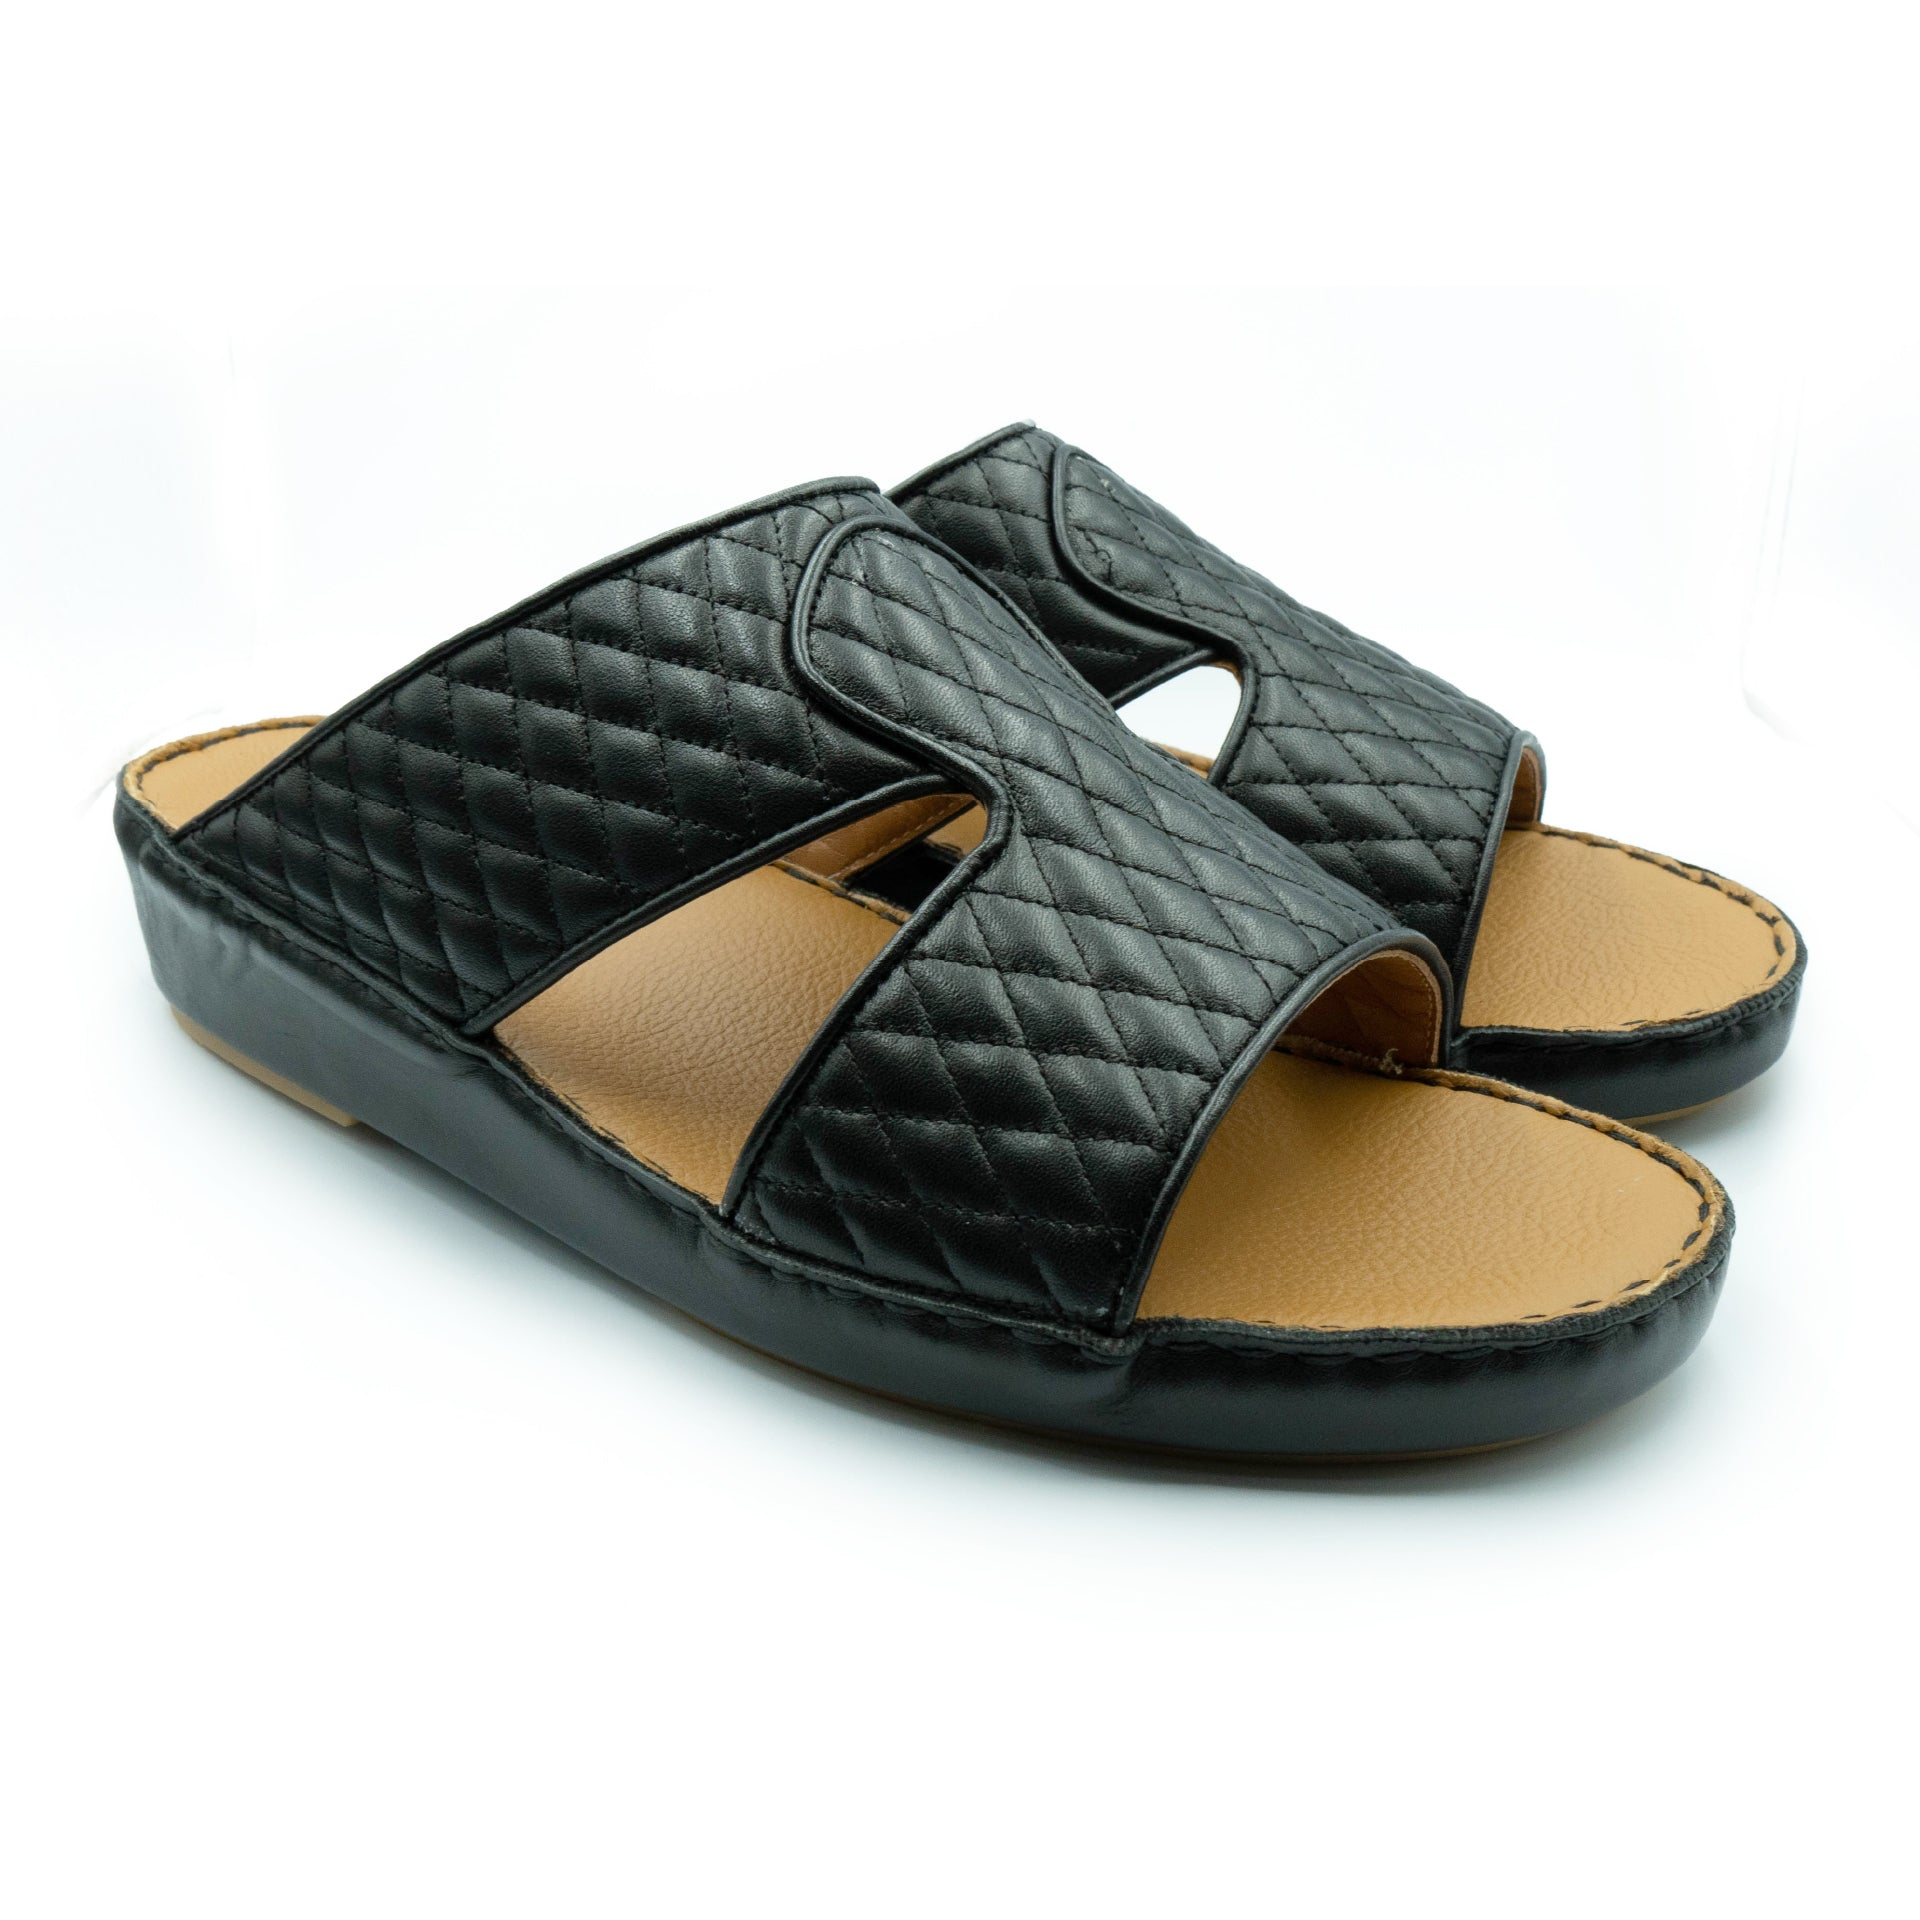 Black Diamond Stitched Crown (317-37) Arabic Sandals